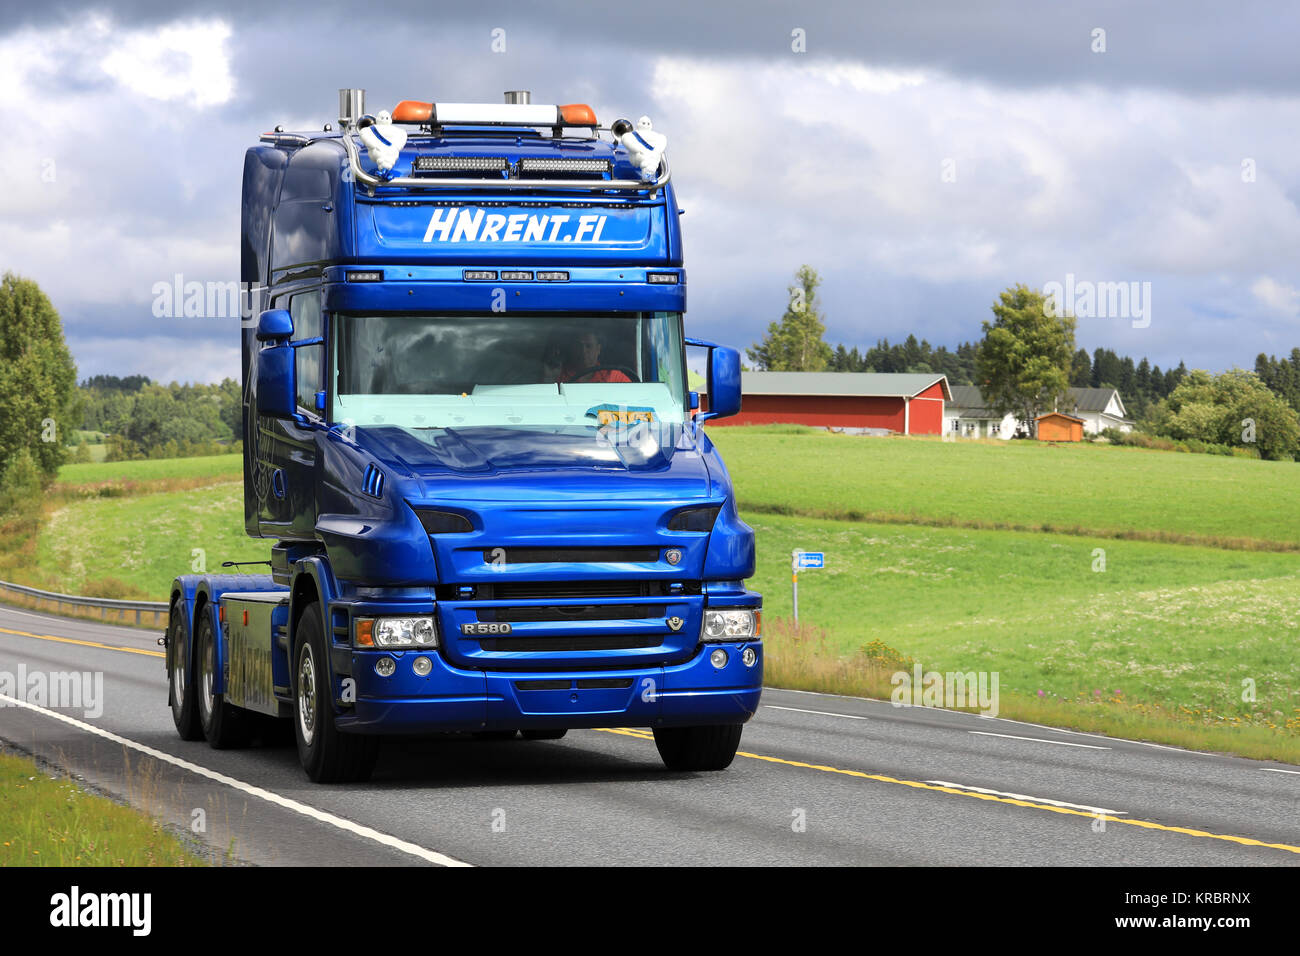 IKAALINEN, FINLAND - AUGUST 13, 2017: Blue Scania R580 truck with conventional cab of HN Rent.fi moves along highway - Stock Image